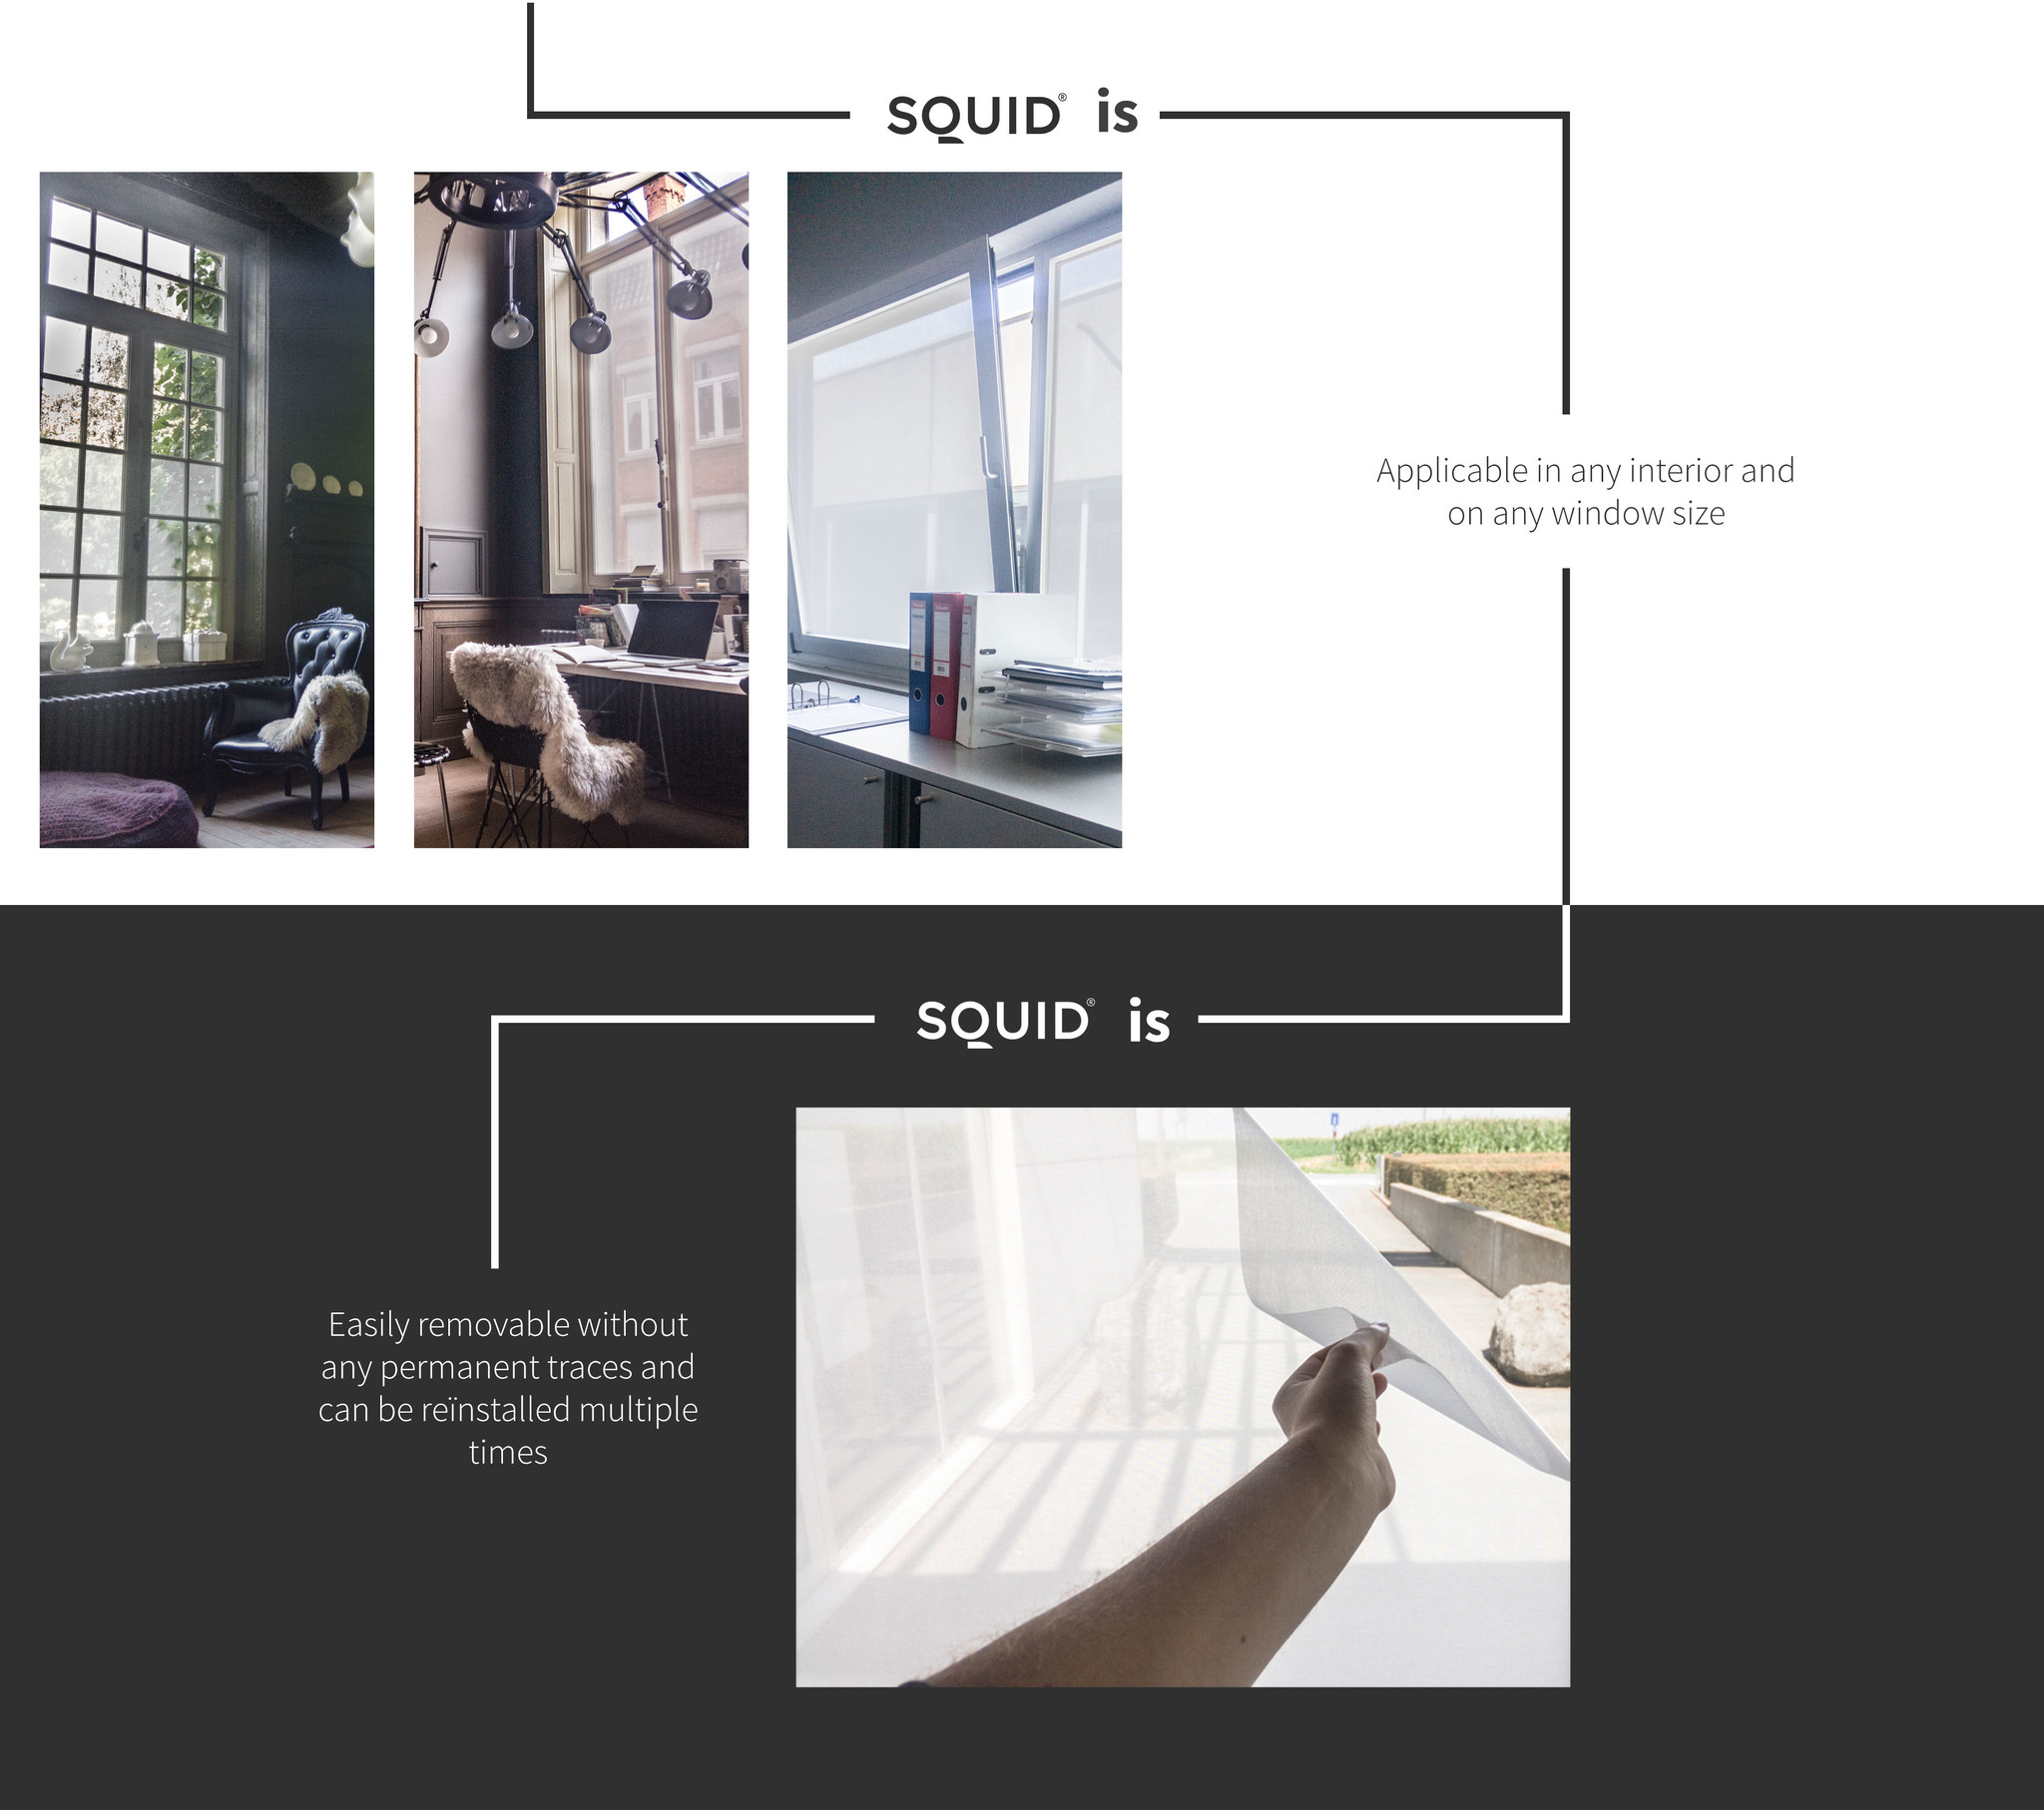 Squid is applicable in any interior and on any window size Squid is easily removable without any permanent traces and can be reinstalled multiple times